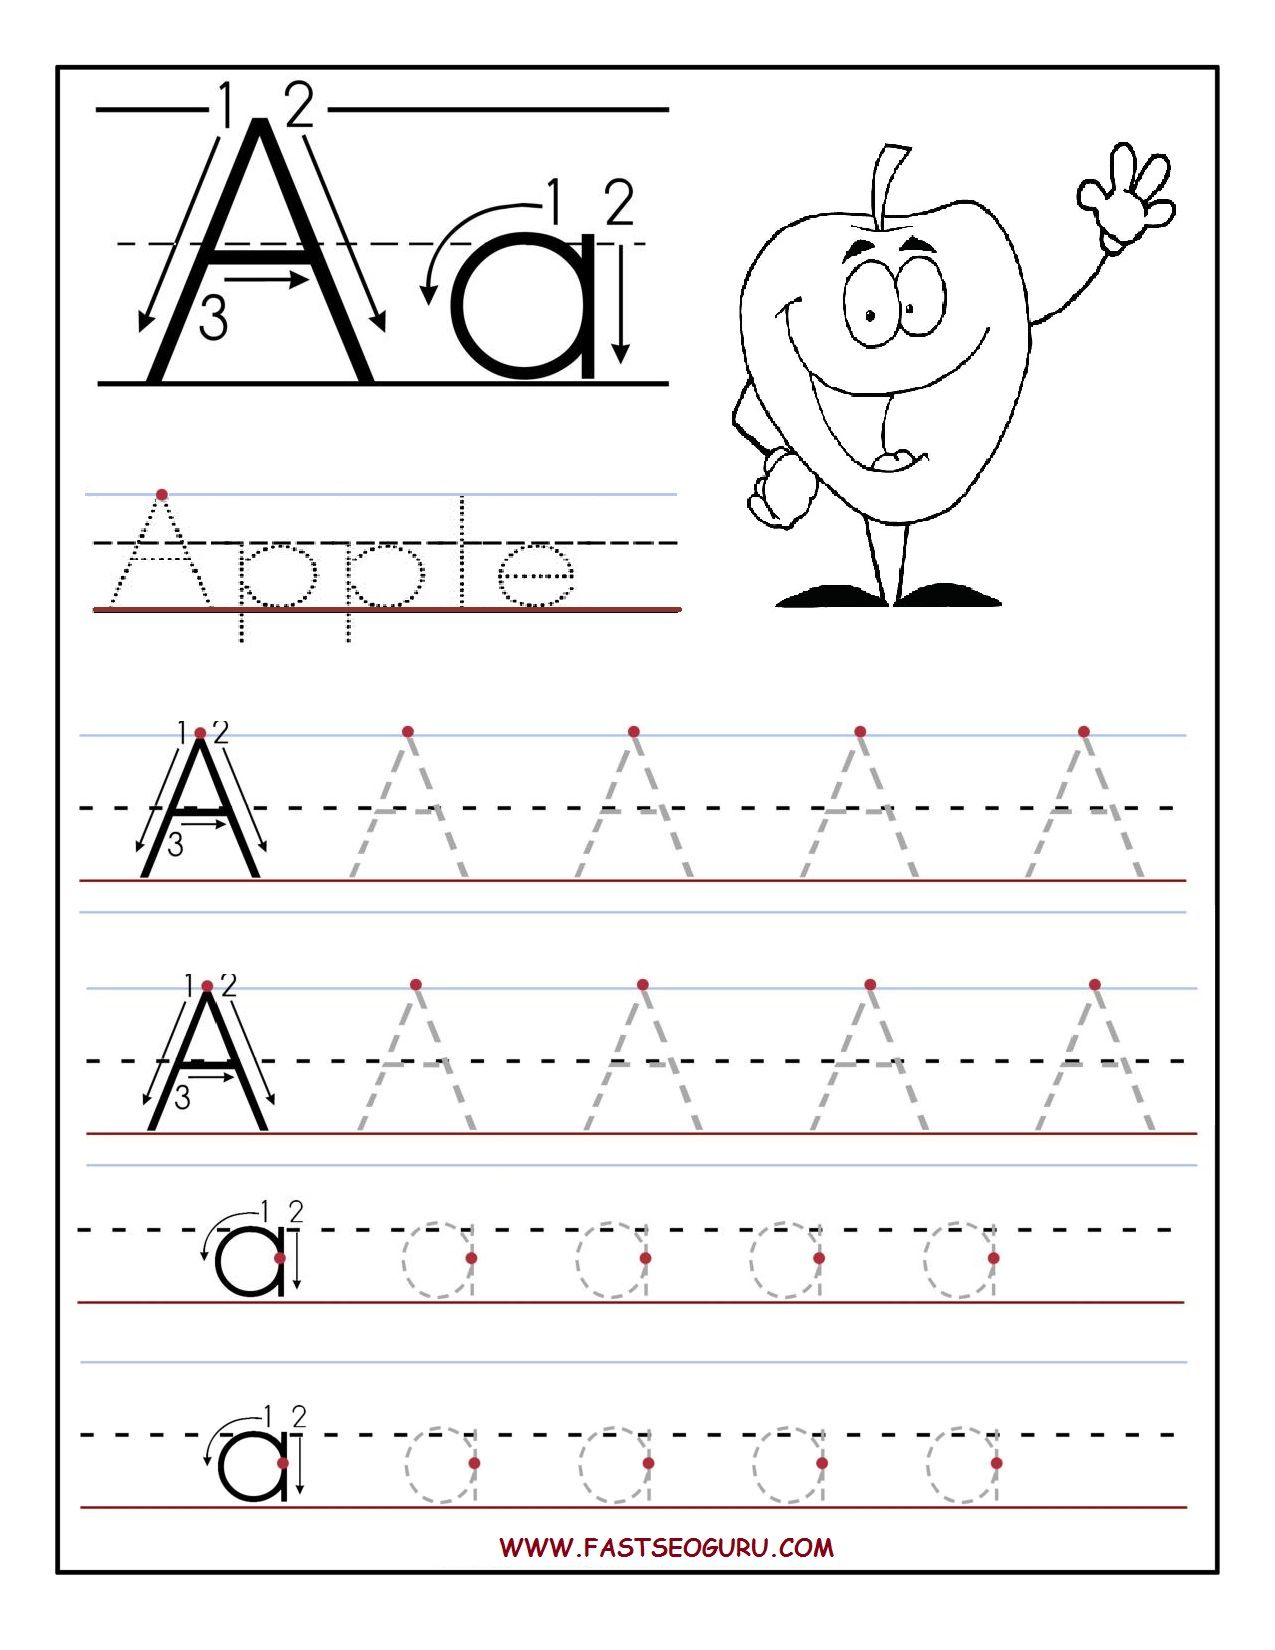 Printables Free Printable Letter Tracing Worksheets letter a worksheets for preschoolers also 1000 images about drew on pinterest tracing worksheets